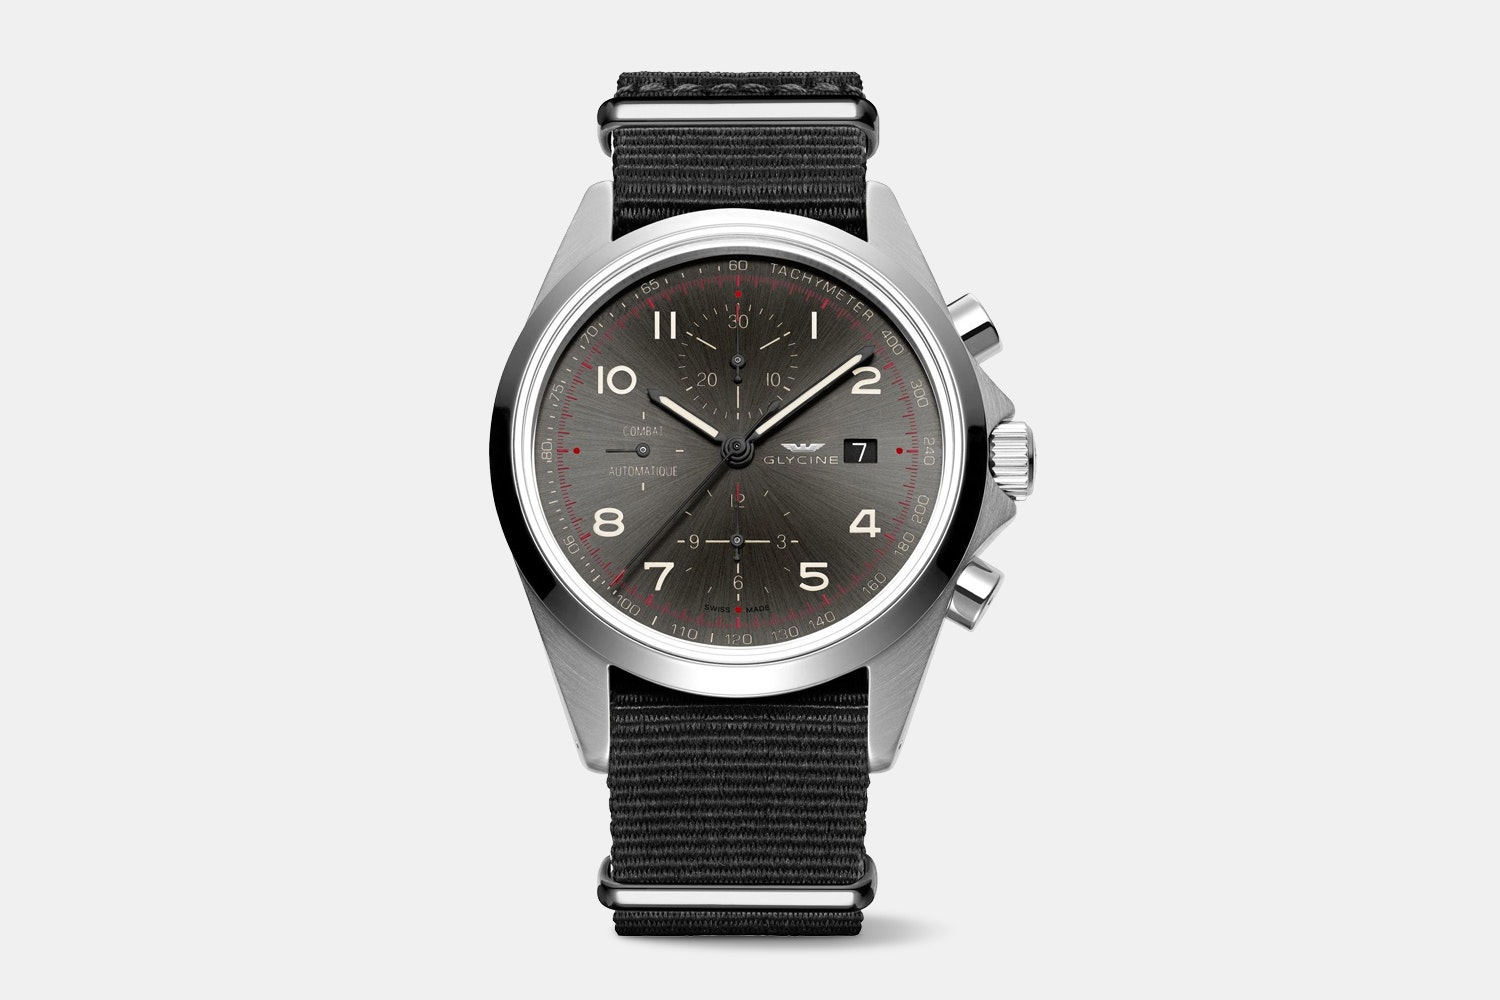 GL0100 (gray dial, black fabric strap)